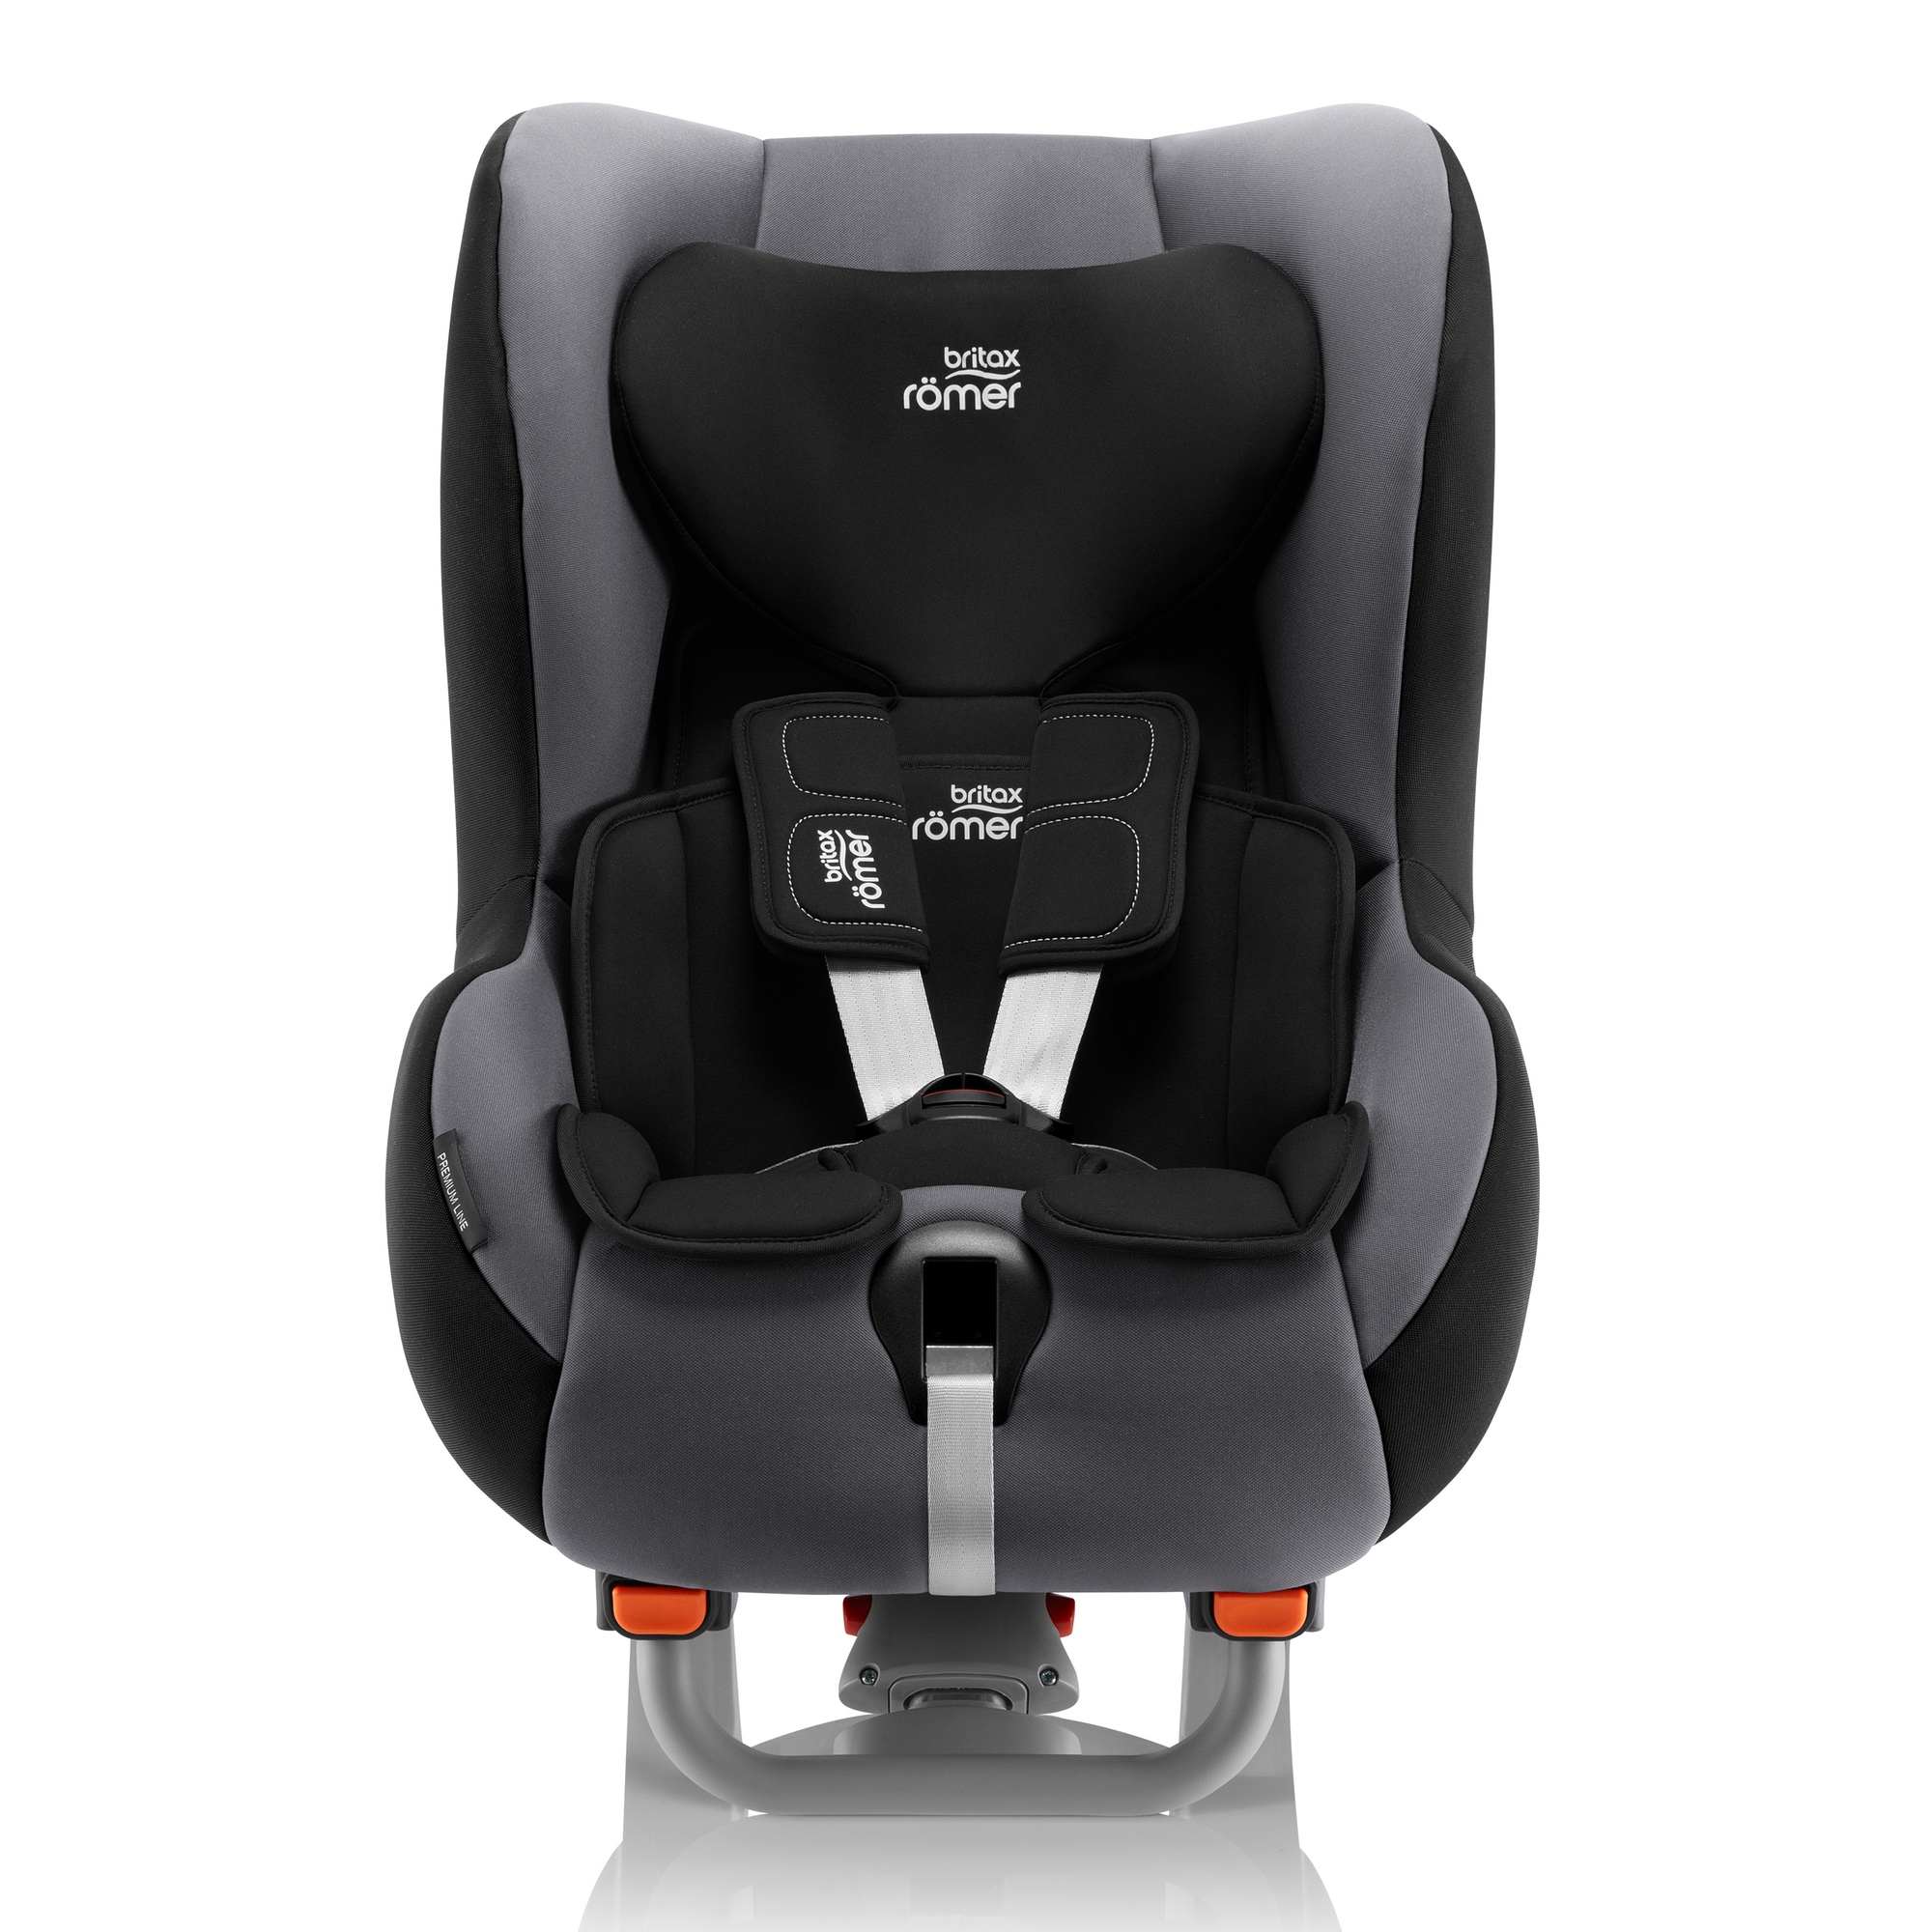 britax r mer komforteinsatz die zwergperten babyschalen reboarder kindersitze. Black Bedroom Furniture Sets. Home Design Ideas